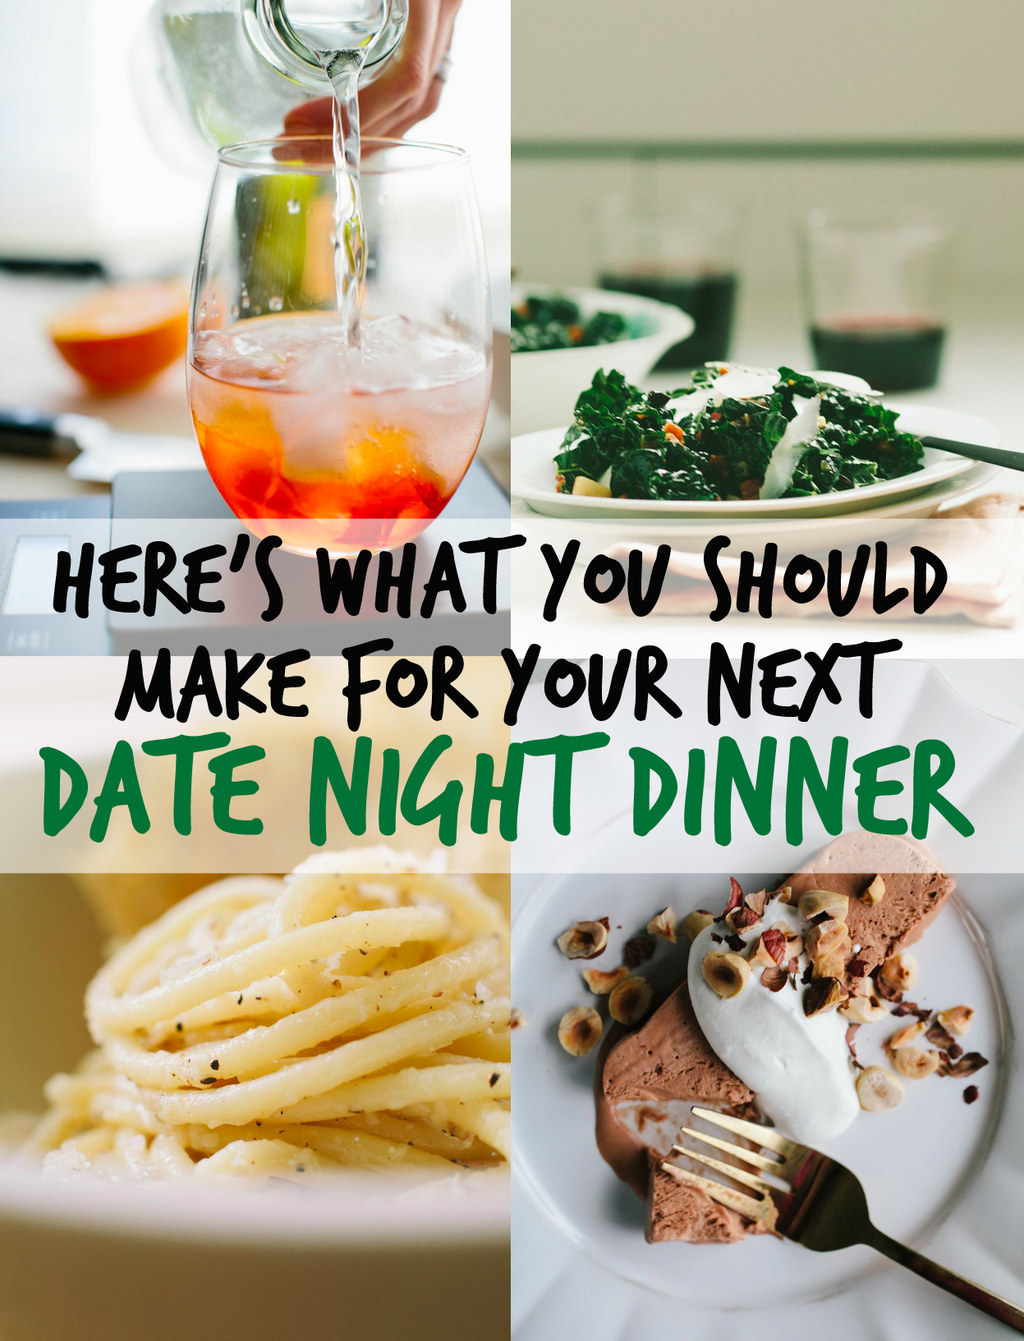 Here's What You Should Make For Your Next Date Night Dinner